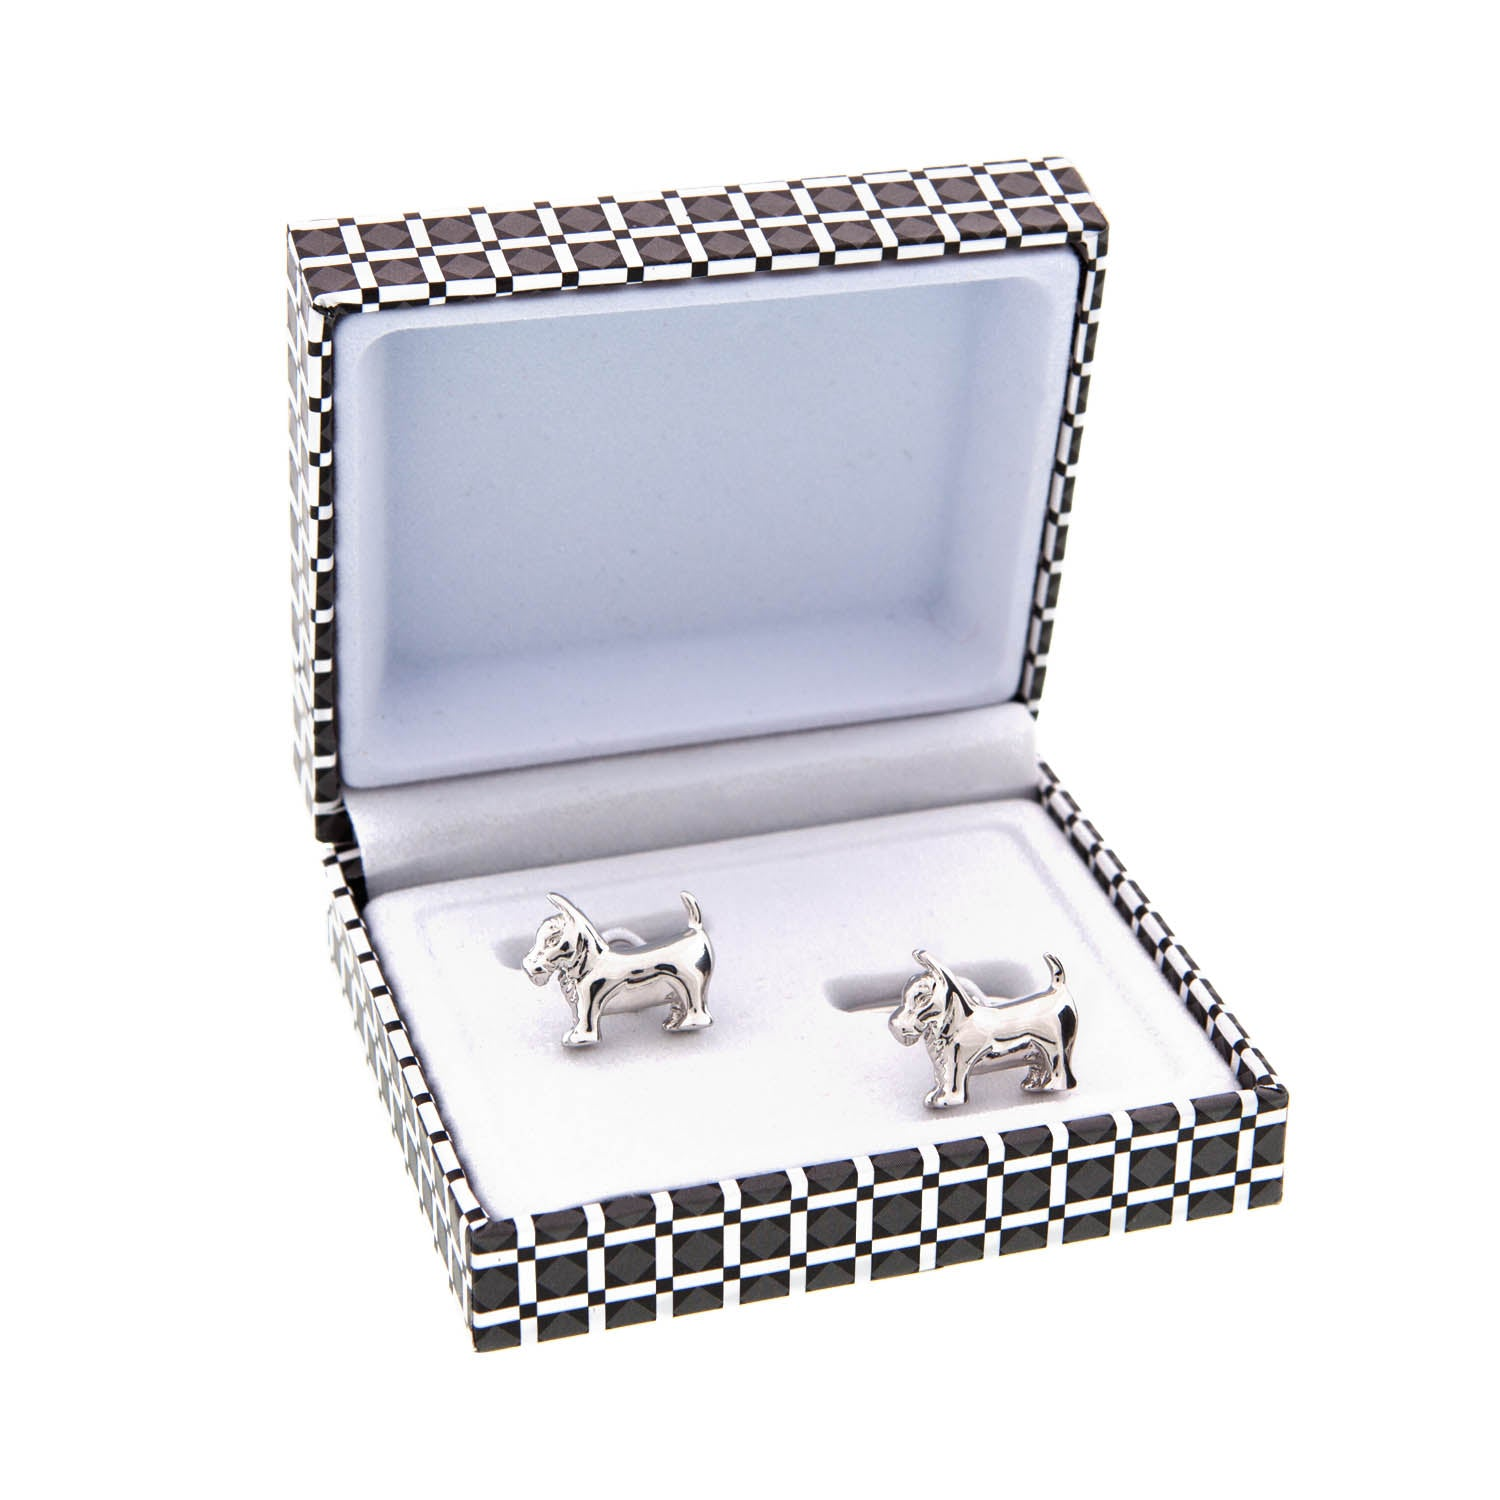 Dog Krazy Gifts - Westie Cufflinks, part of the range of West Highland Terrier themed gifts available from DogKrazyGifts.co.uk